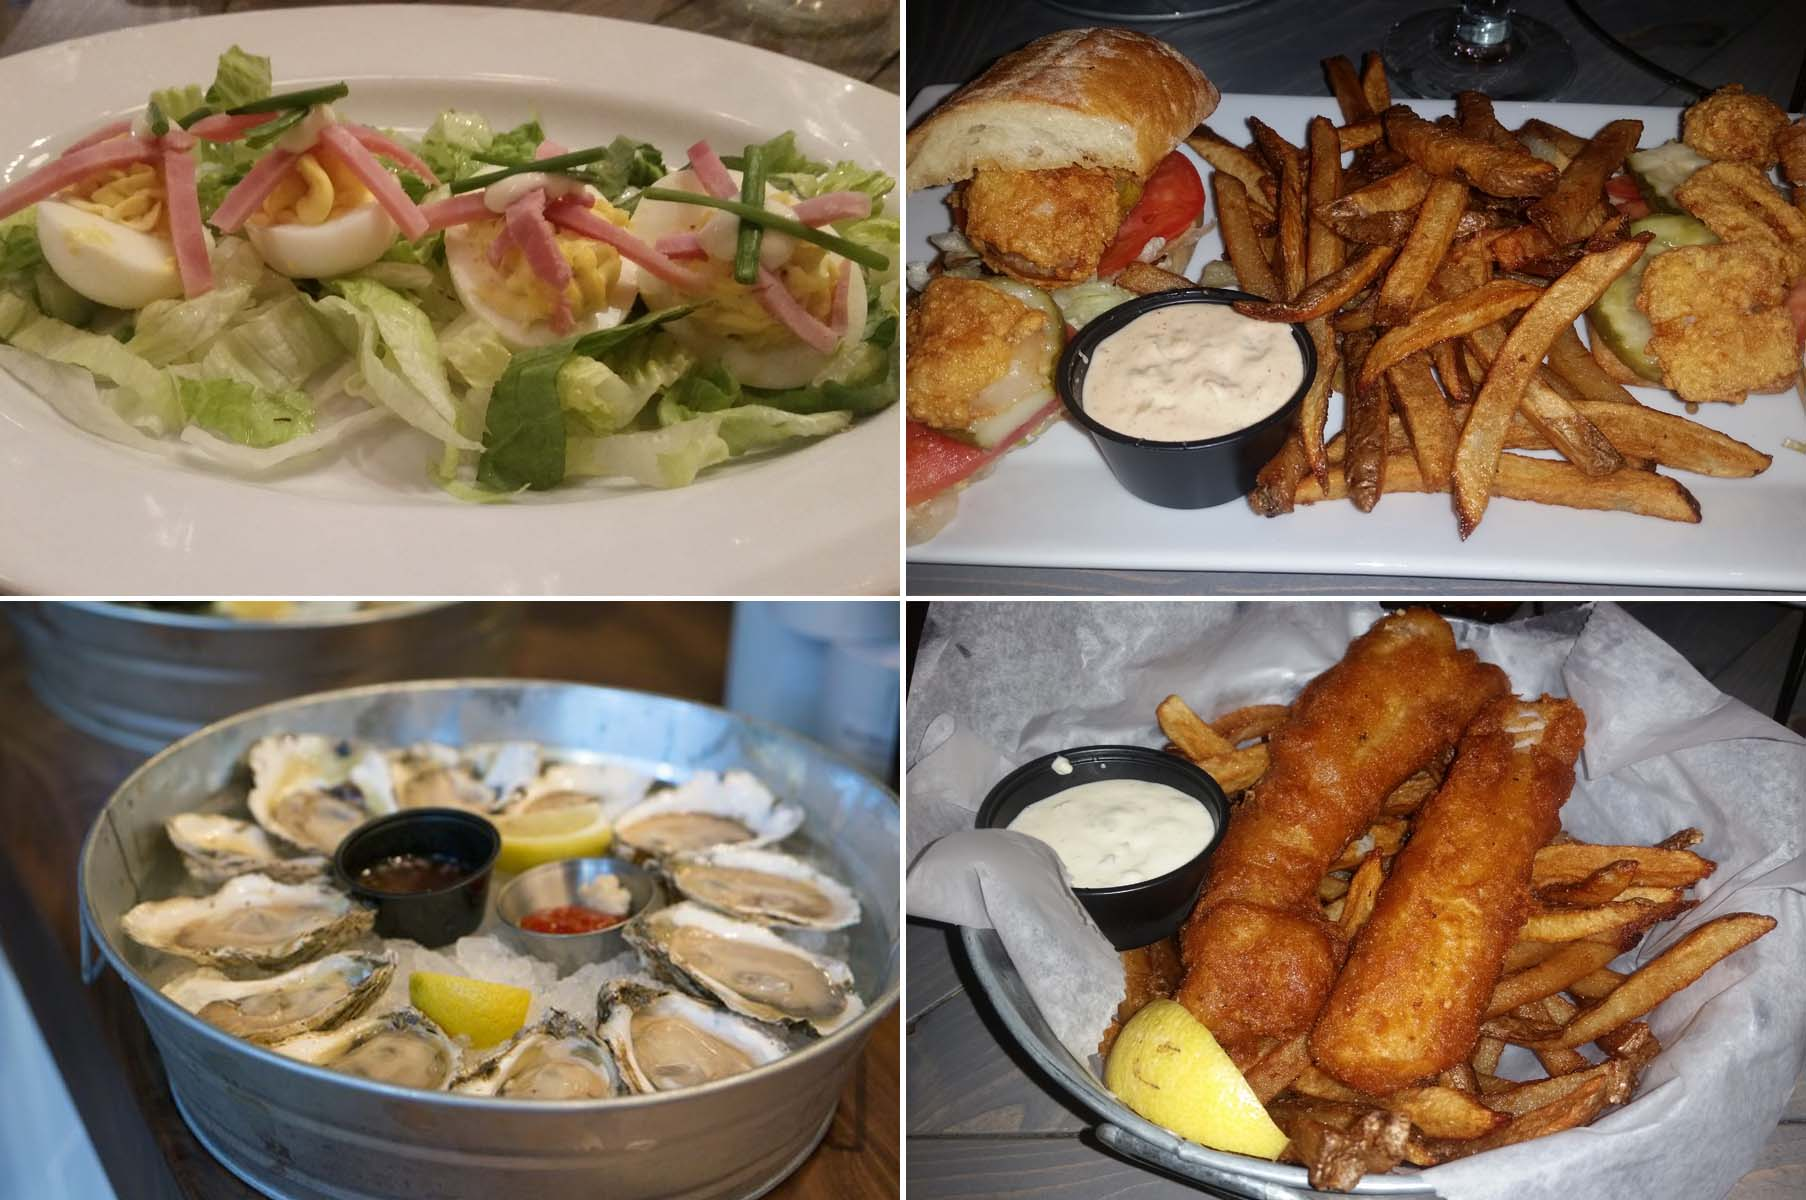 Dishes at the Walrus Oyster & Ale House include deviled eggs (clockwise from top left), scallop po' boy, fish and chips, and raw oysters. (Photos: Mark Heckathorn/DC on Heels)